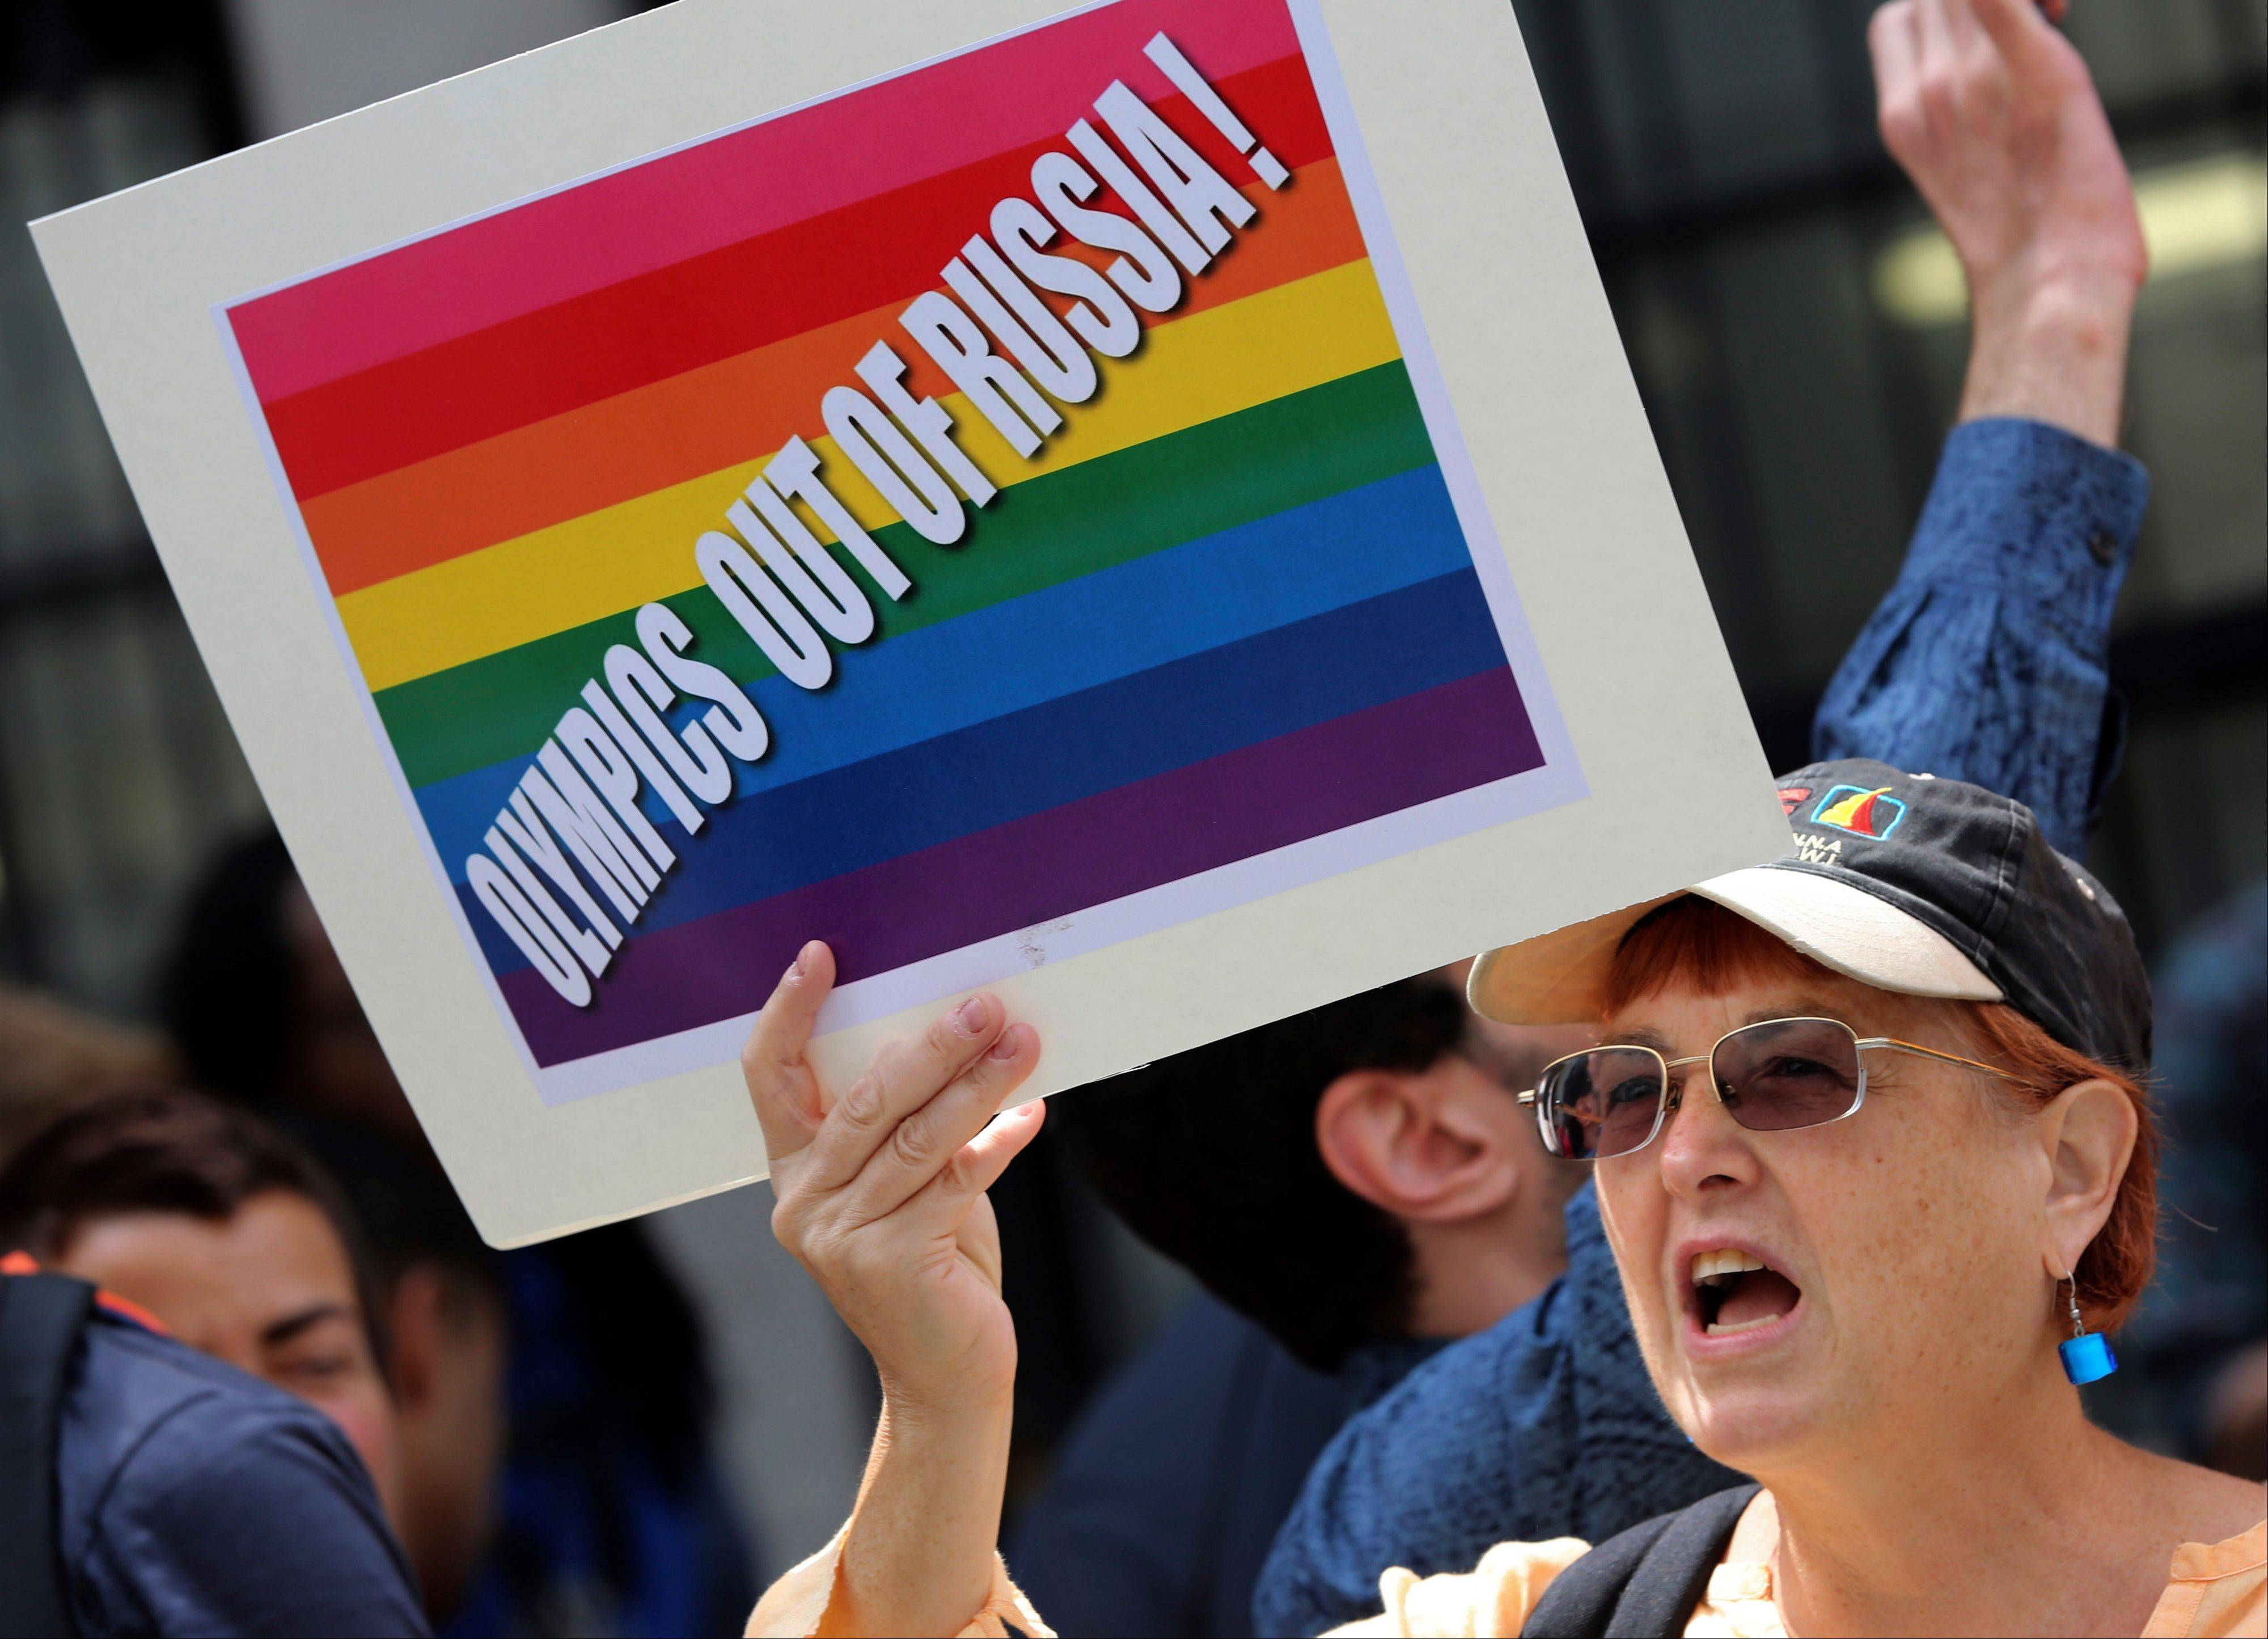 A gay rights activist chant slogans during a demonstration in front of the Russian consulate in New York, Wednesday, July 31, 2013. Russian vodka and the Winter Olympics in Sochi are the prime targets as gays in the United States and elsewhere propose boycotts and other tactics to convey their outrage over Russia's intensifying campaign against gay-rights activism.